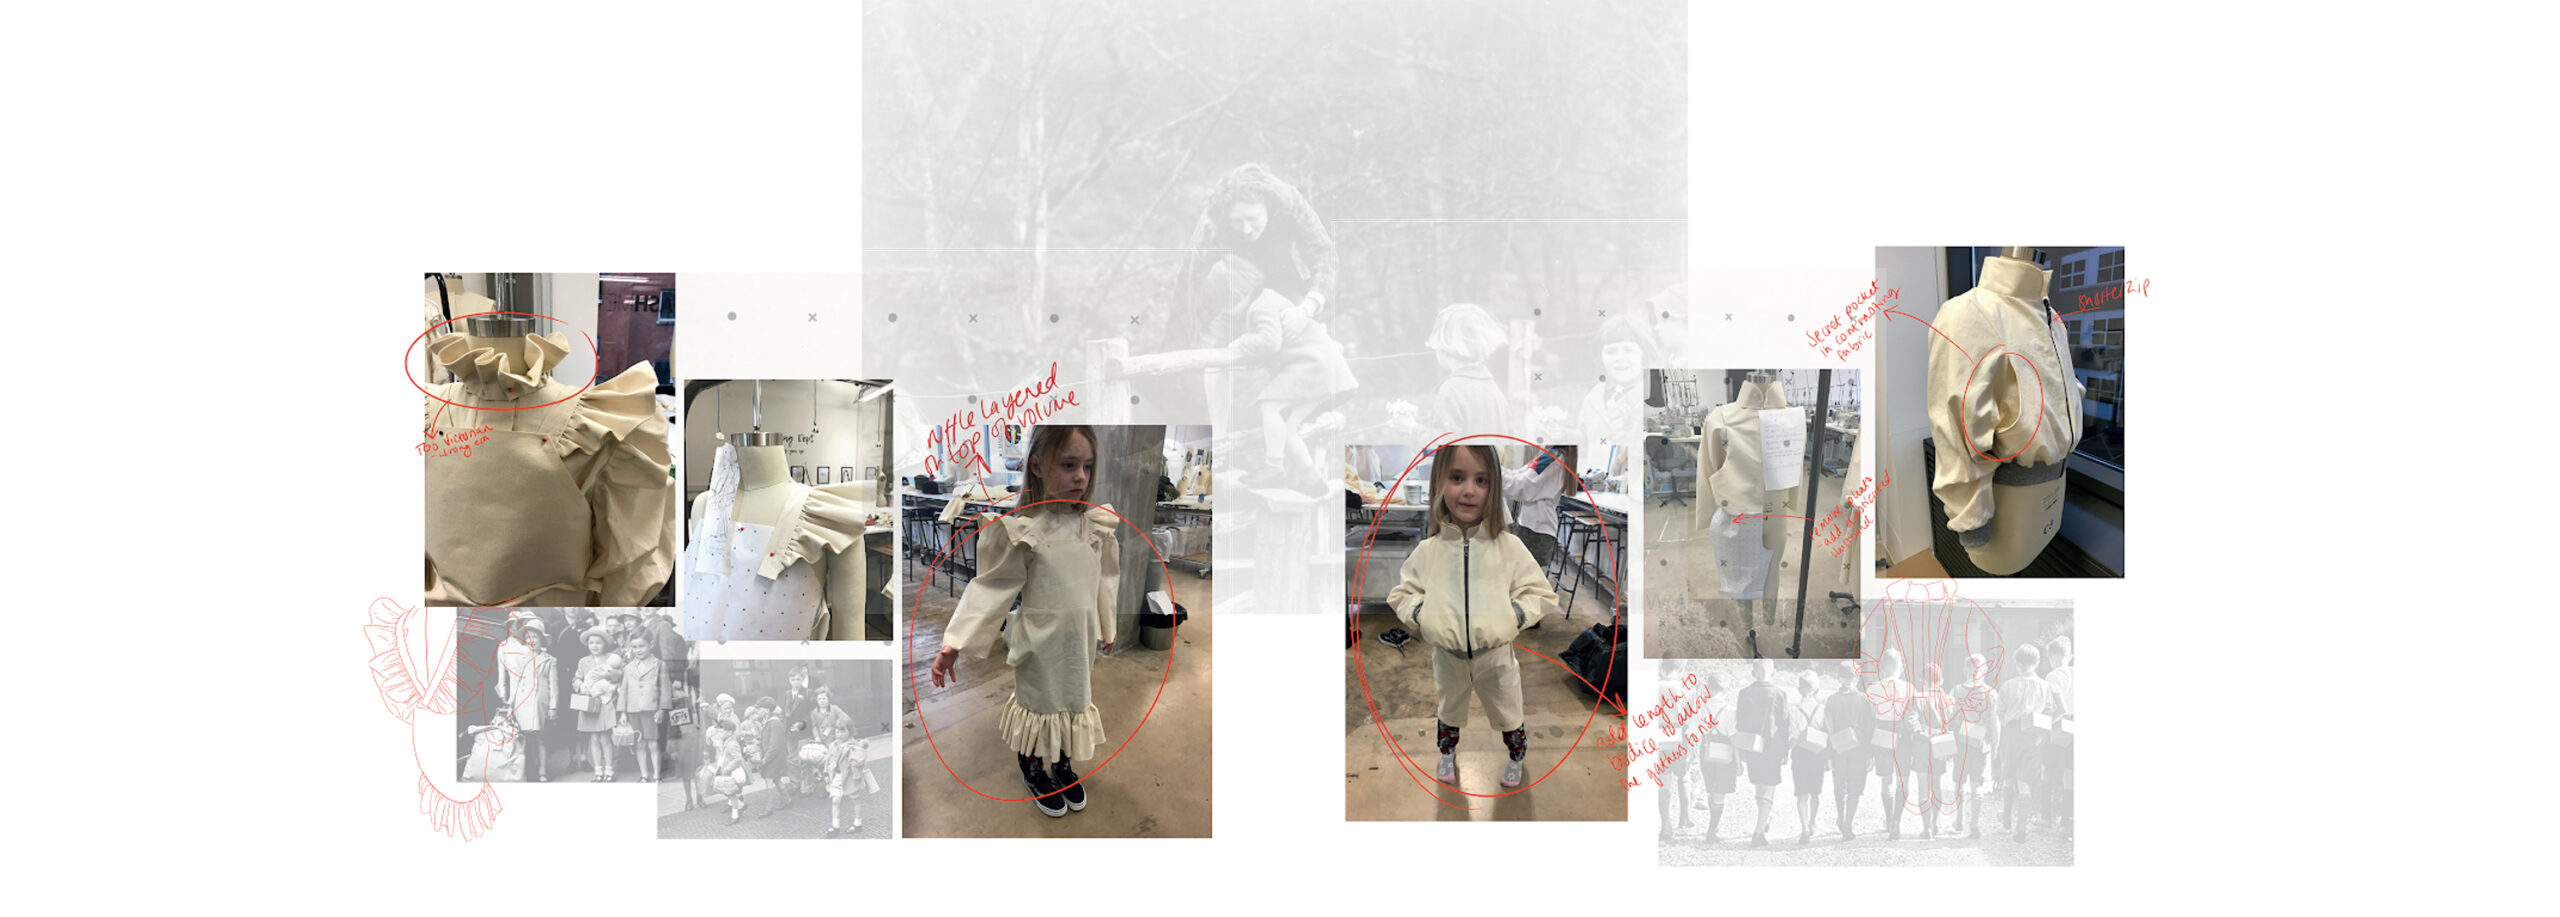 Daisy Sanders_2149219_assignsubmission_file_daisy board 4